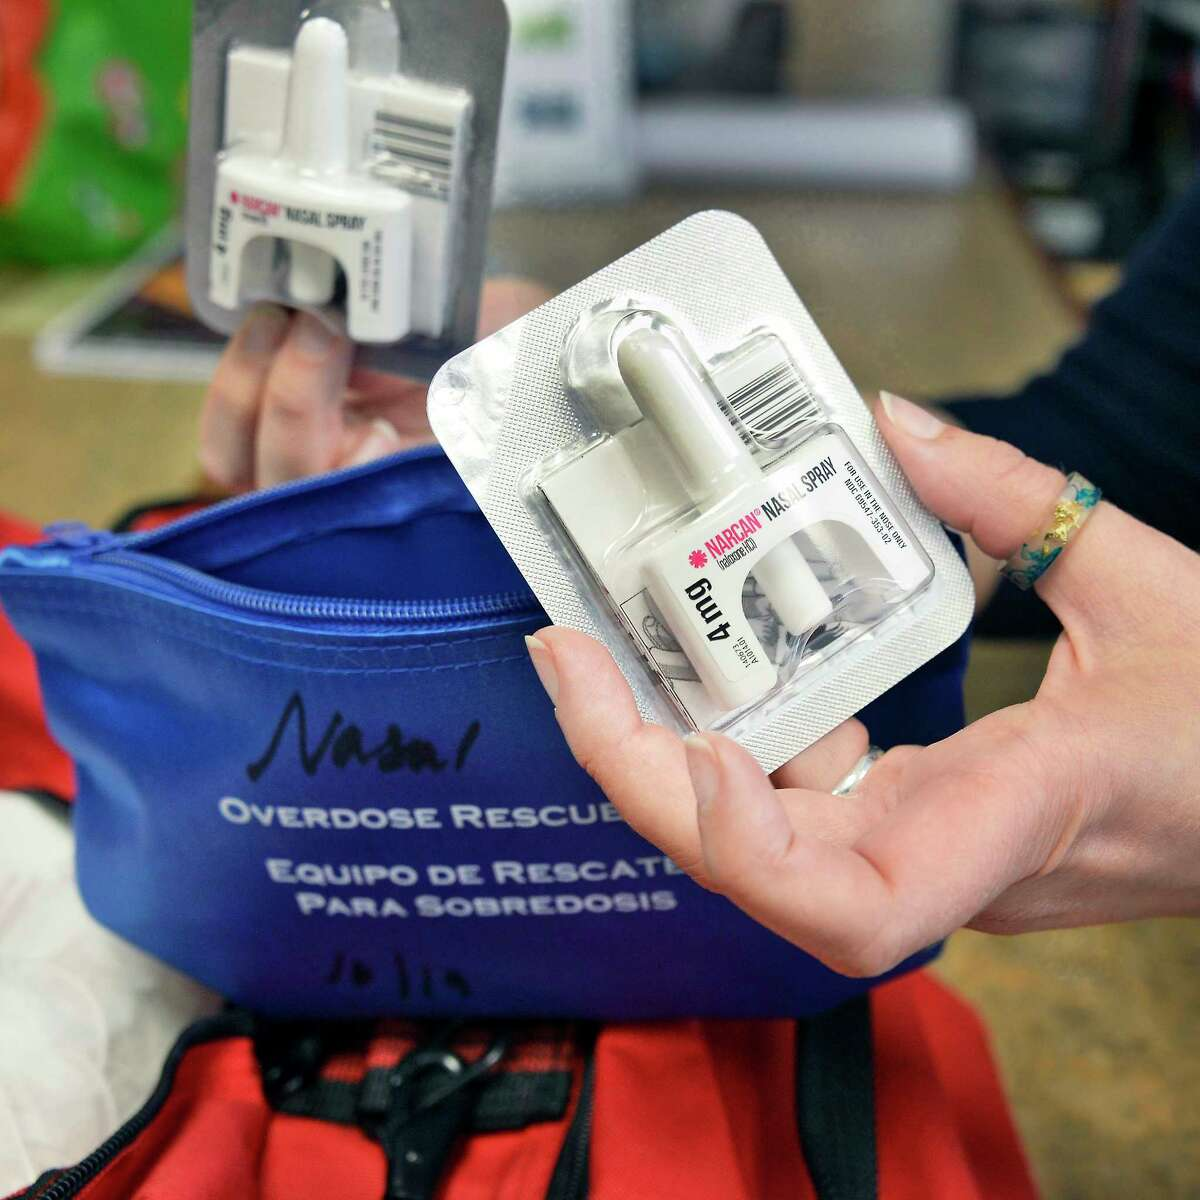 Albany Public Library assistant director Melanie Metger with a Narcan kit for drug overdoses in one of the emergency bags at the library's main branch Wednesday August 15, 2018 in Albany, NY. (John Carl D'Annibale/Times Union)